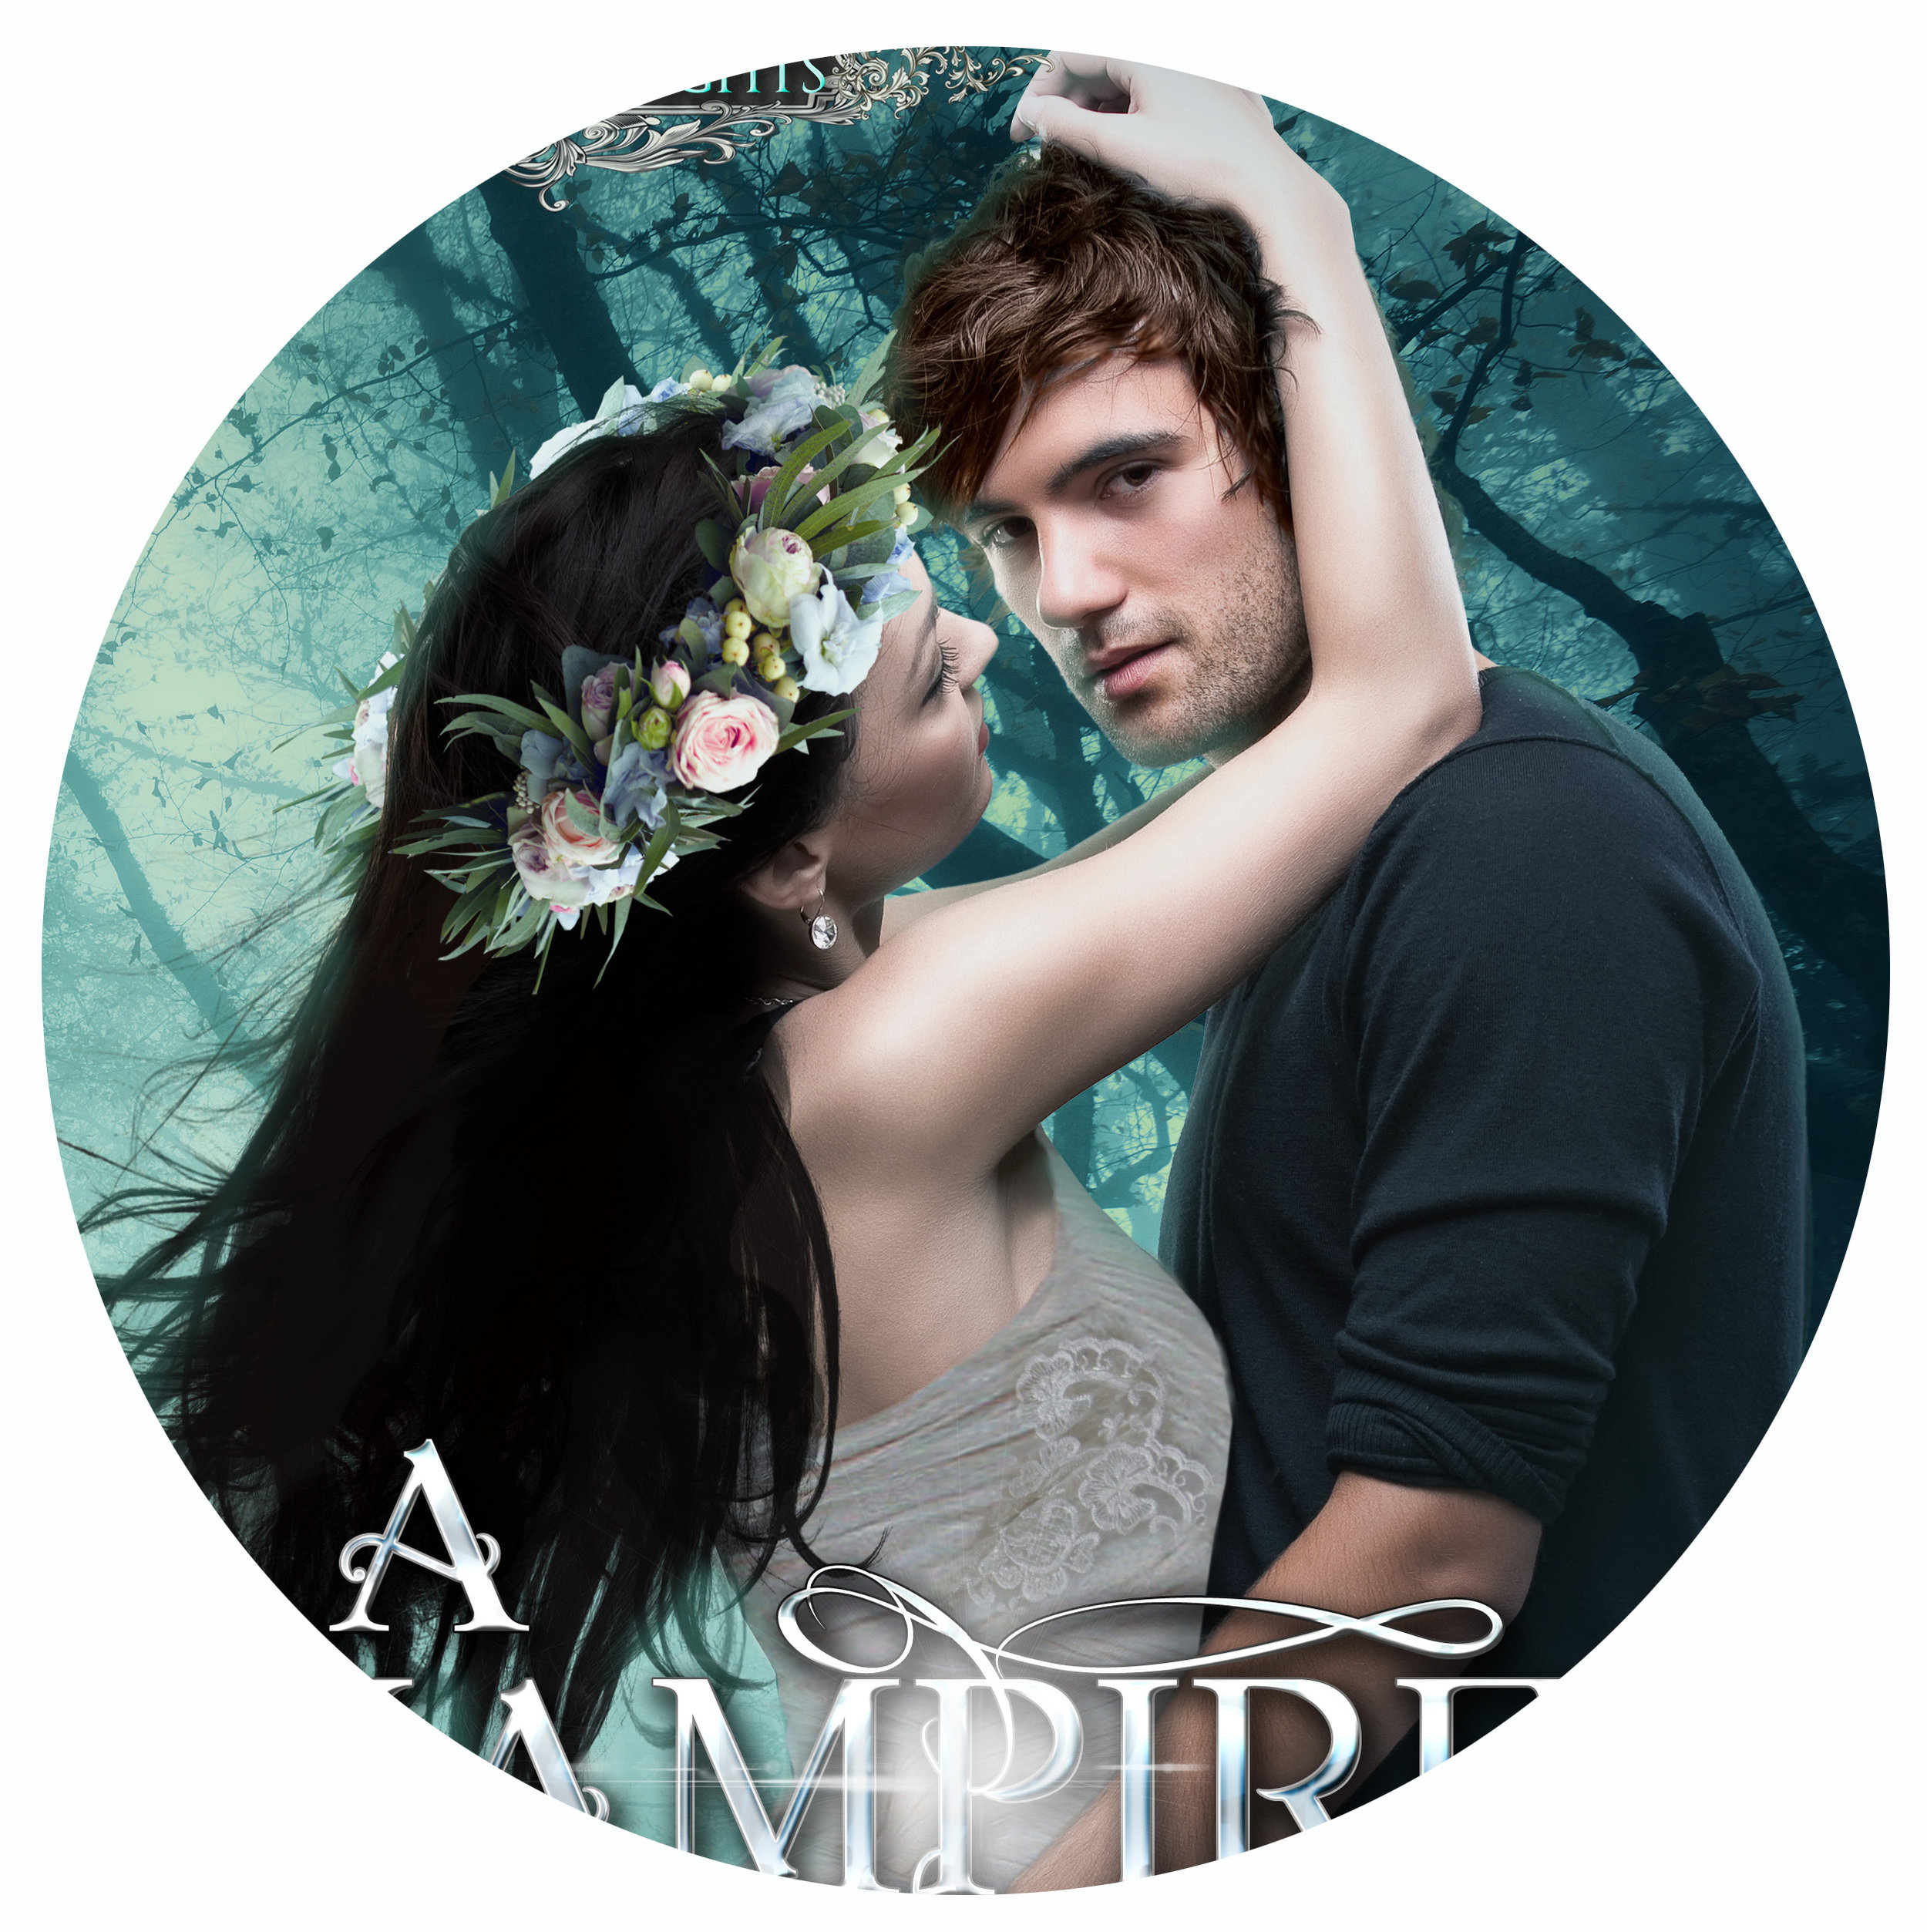 A Vampire Wedding - In order to grow the world of Fateful Vampires and explore new stories, Tristan Hunt (the narrator of Cheri's audiobooks) began ghostwriting with Cheri. The first book completely with his help was a novella focused on the wedding of Sir Max, the Vampire Knight, and Lady Nadia.